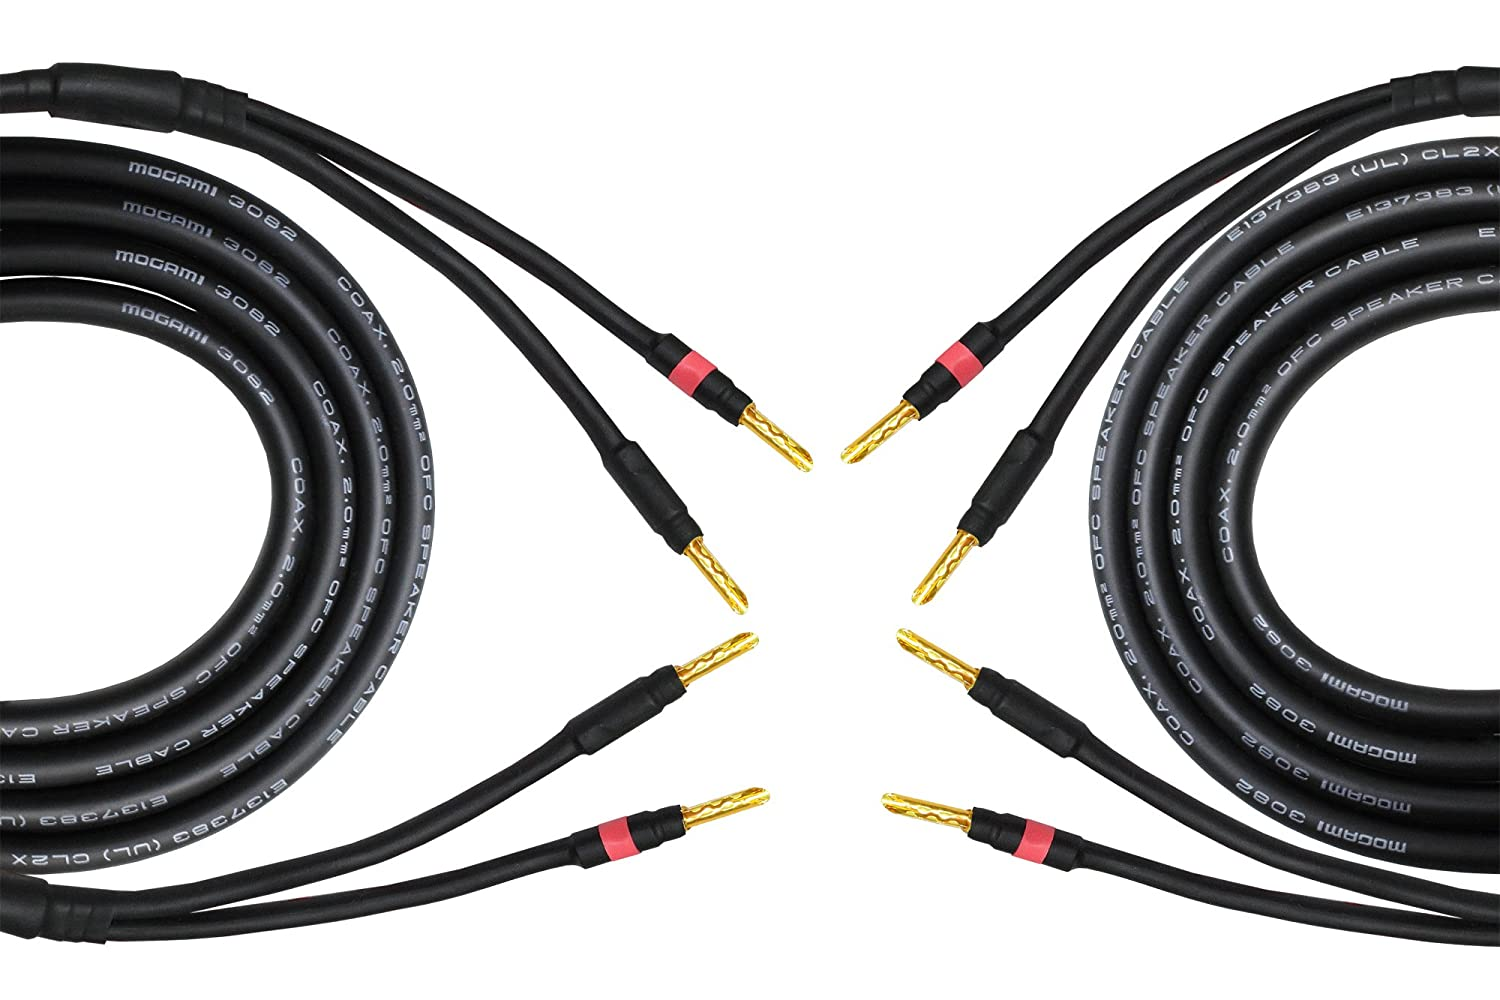 10 Foot - Coaxial Audiophile Speaker Cable Pair CUSTOM MADE By WORLDS BEST CABLES – using Mogami 3082 wire & Eminence Gold Plated Banana Plugs (2 plugs on each end)